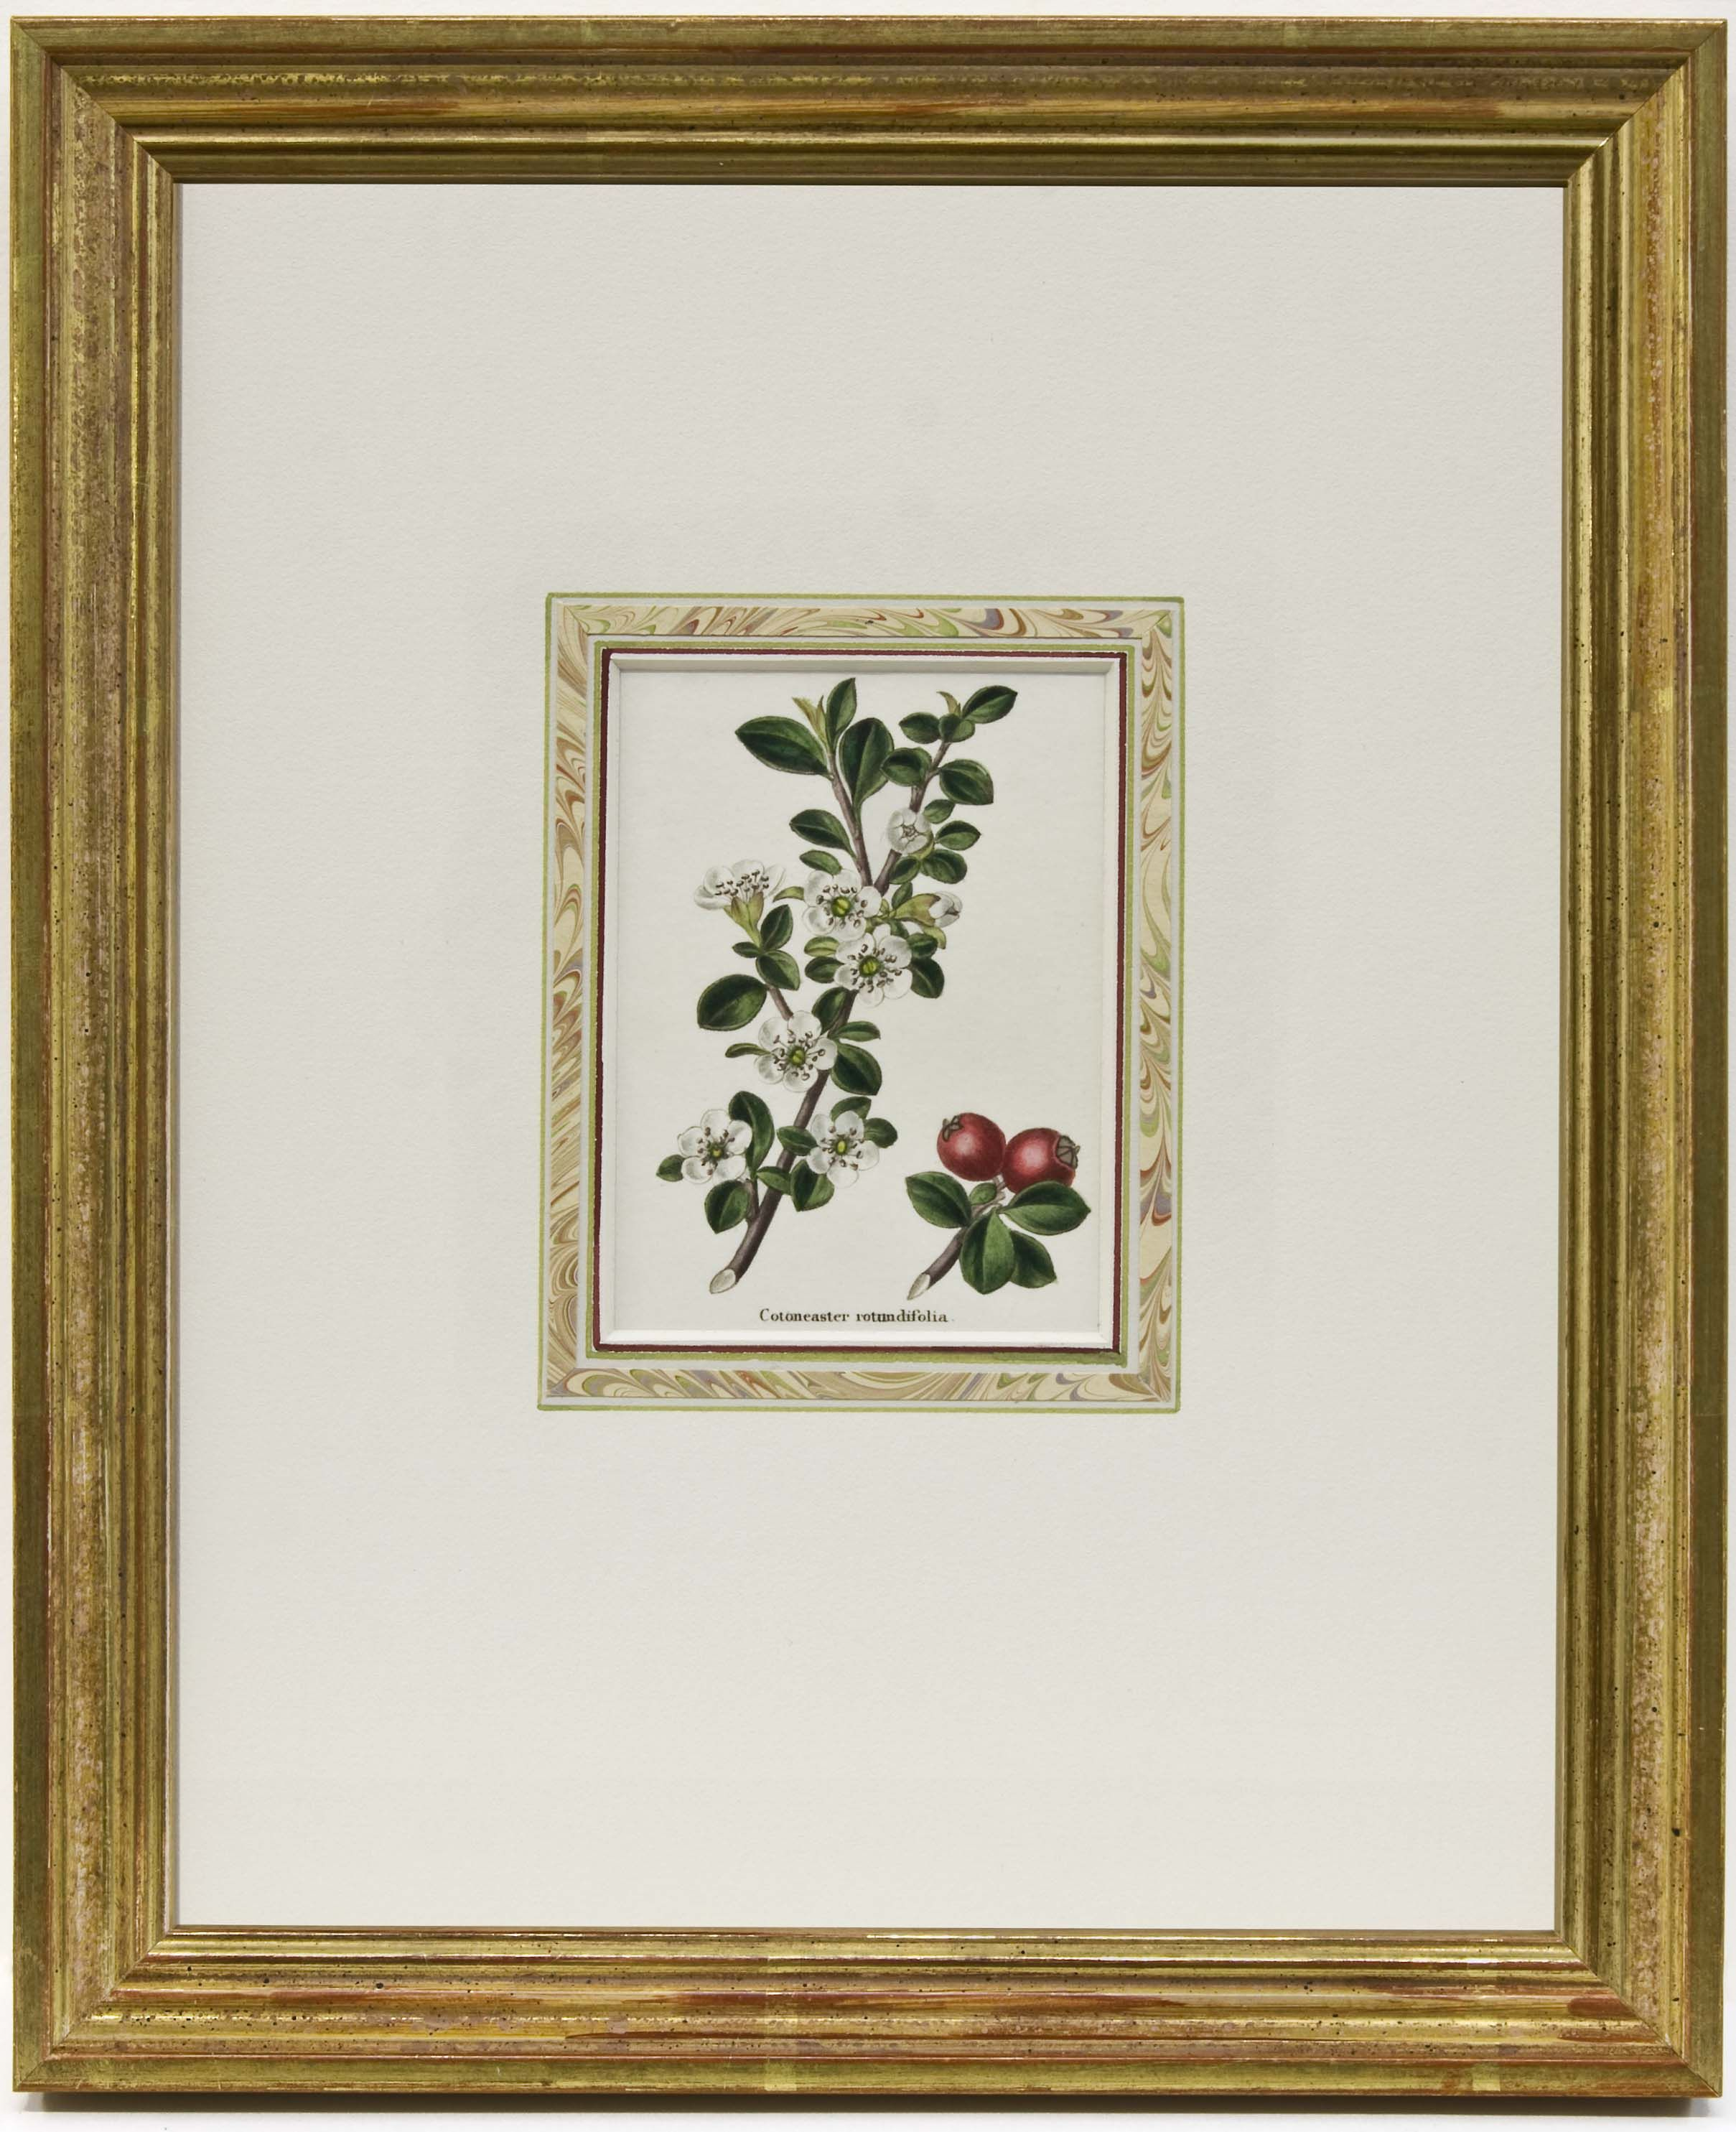 Cotoncaster Rotundifolia Benjamin Maund C 1840 Hand Colored Steel Engraving In A Pee Gold Over Red Clay Frame Encased With Marbled Paper And French